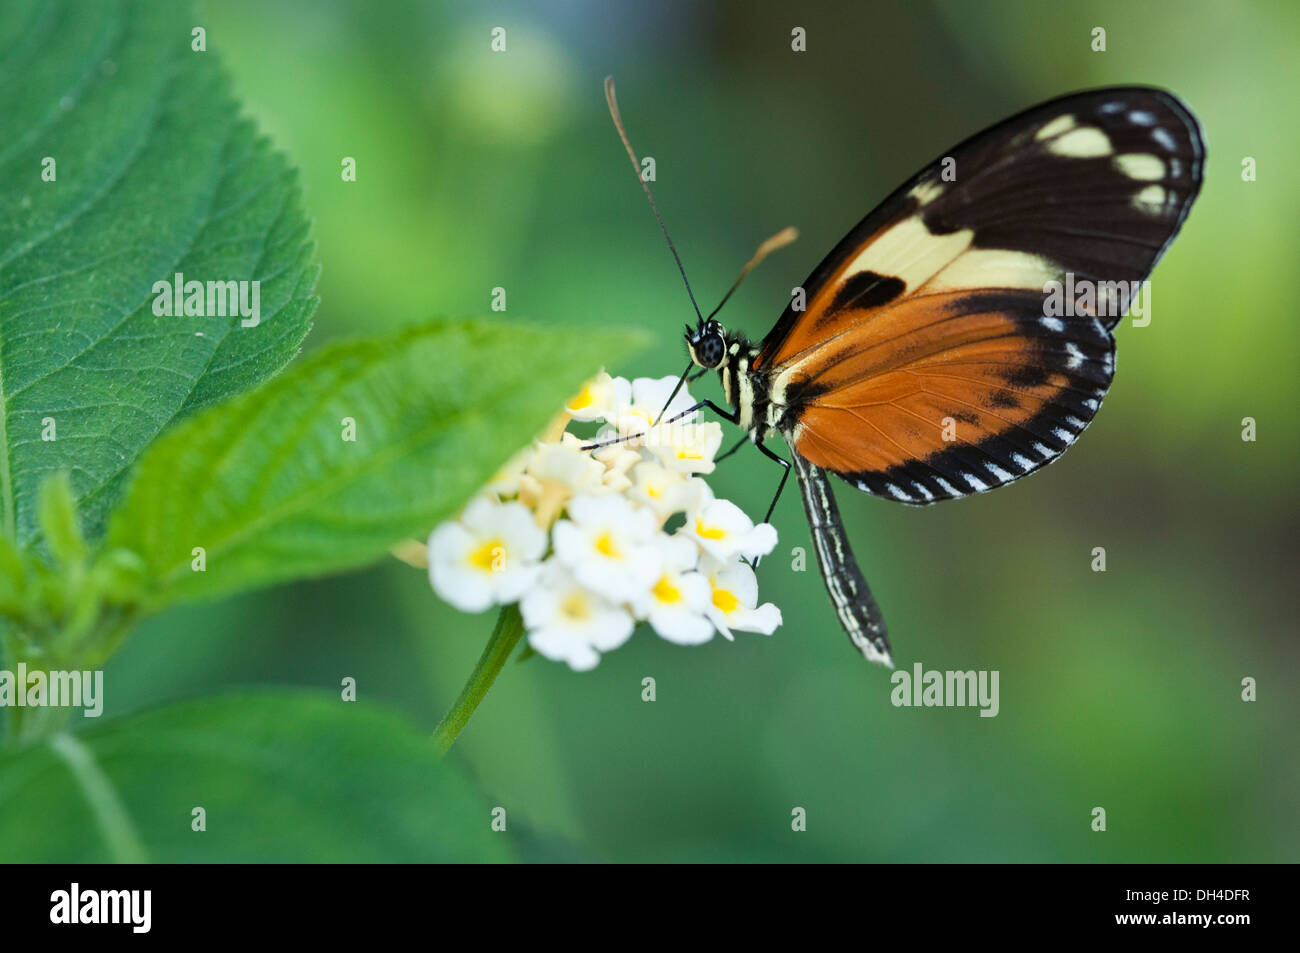 Heliconius hecale zuleika butterfly feeding on clustered white flowers of Lantana camara - Stock Image